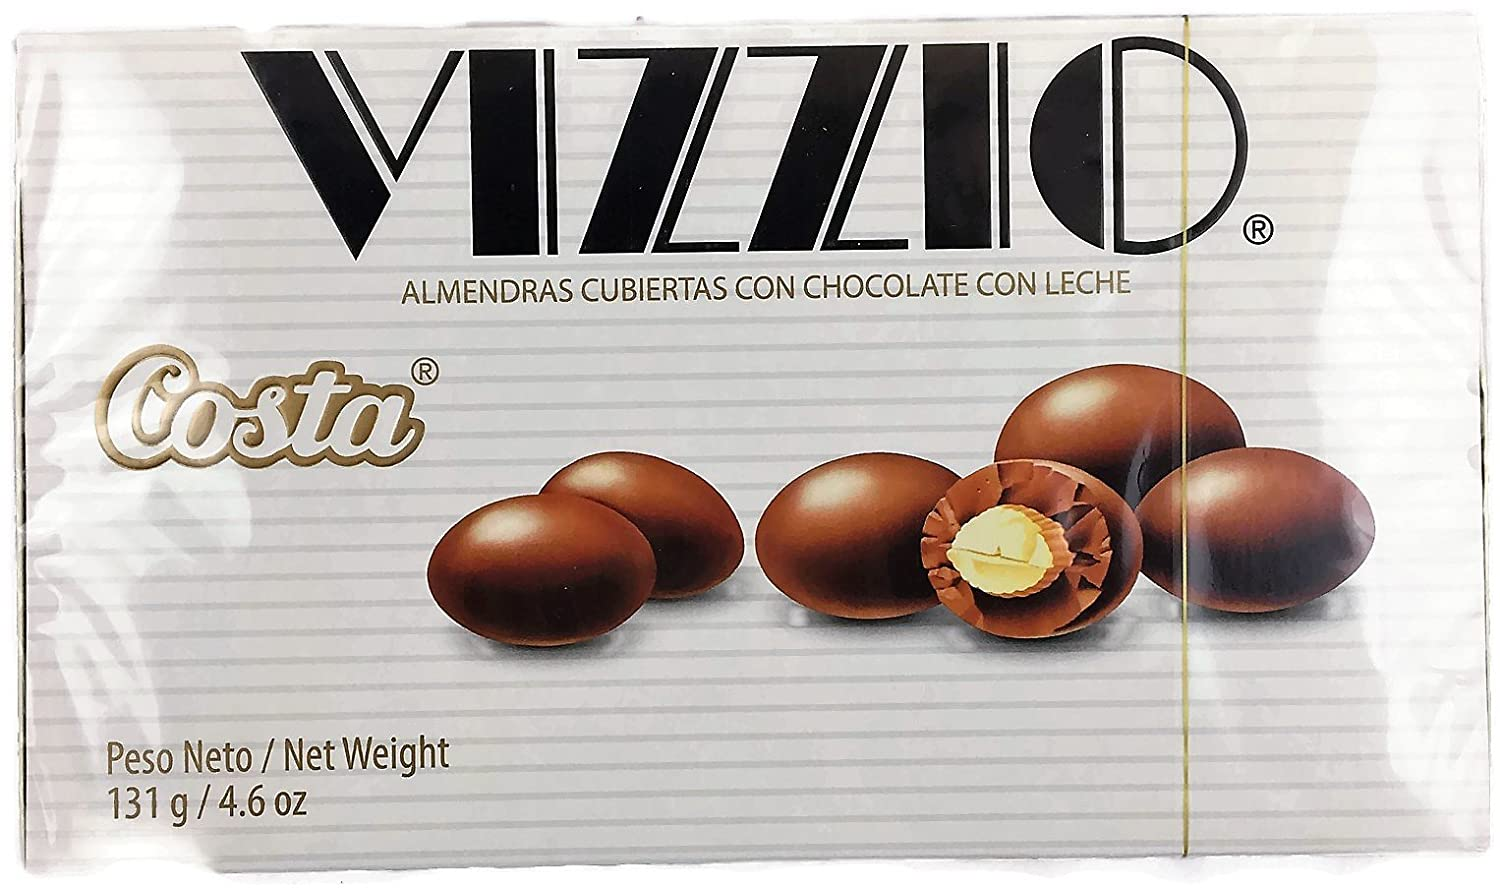 Amazon.com : Peruvian Chocolate Vizzio Almond Covered With Chocolate 131 Grams 4.6 oz 1 Box : Grocery & Gourmet Food